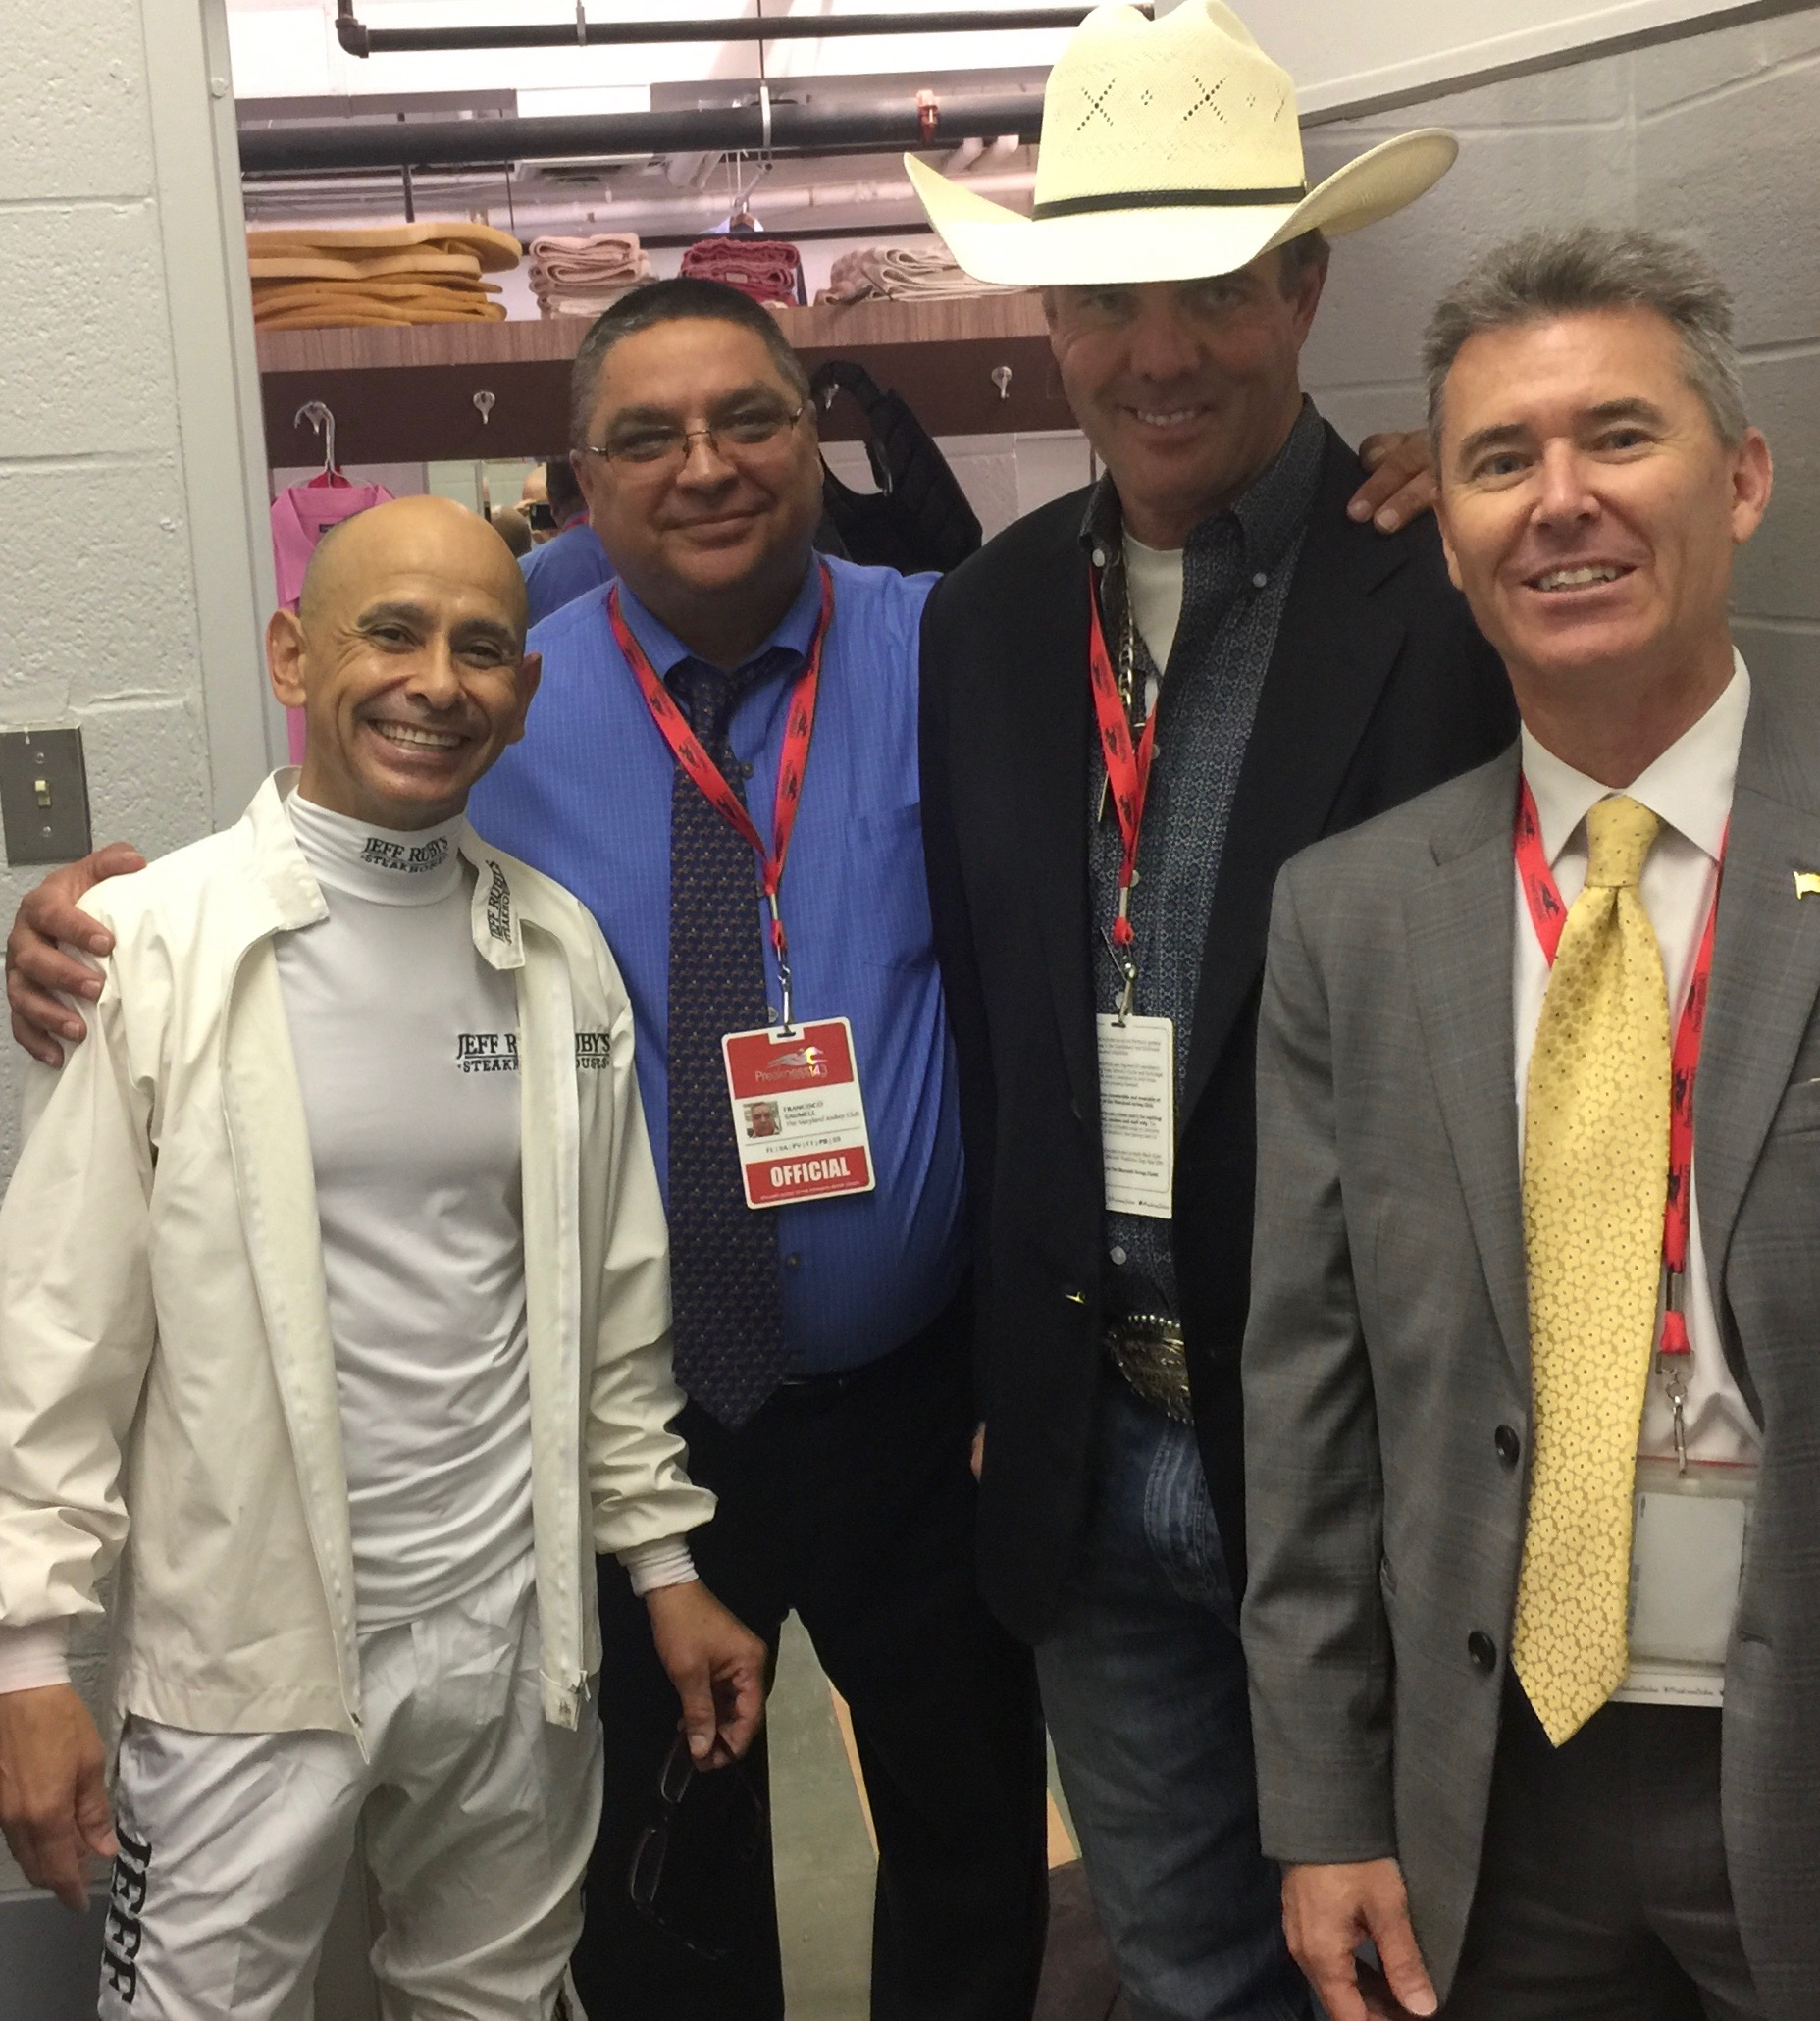 Mike and I visiting with race officials in the Jockey's Locker Room  -